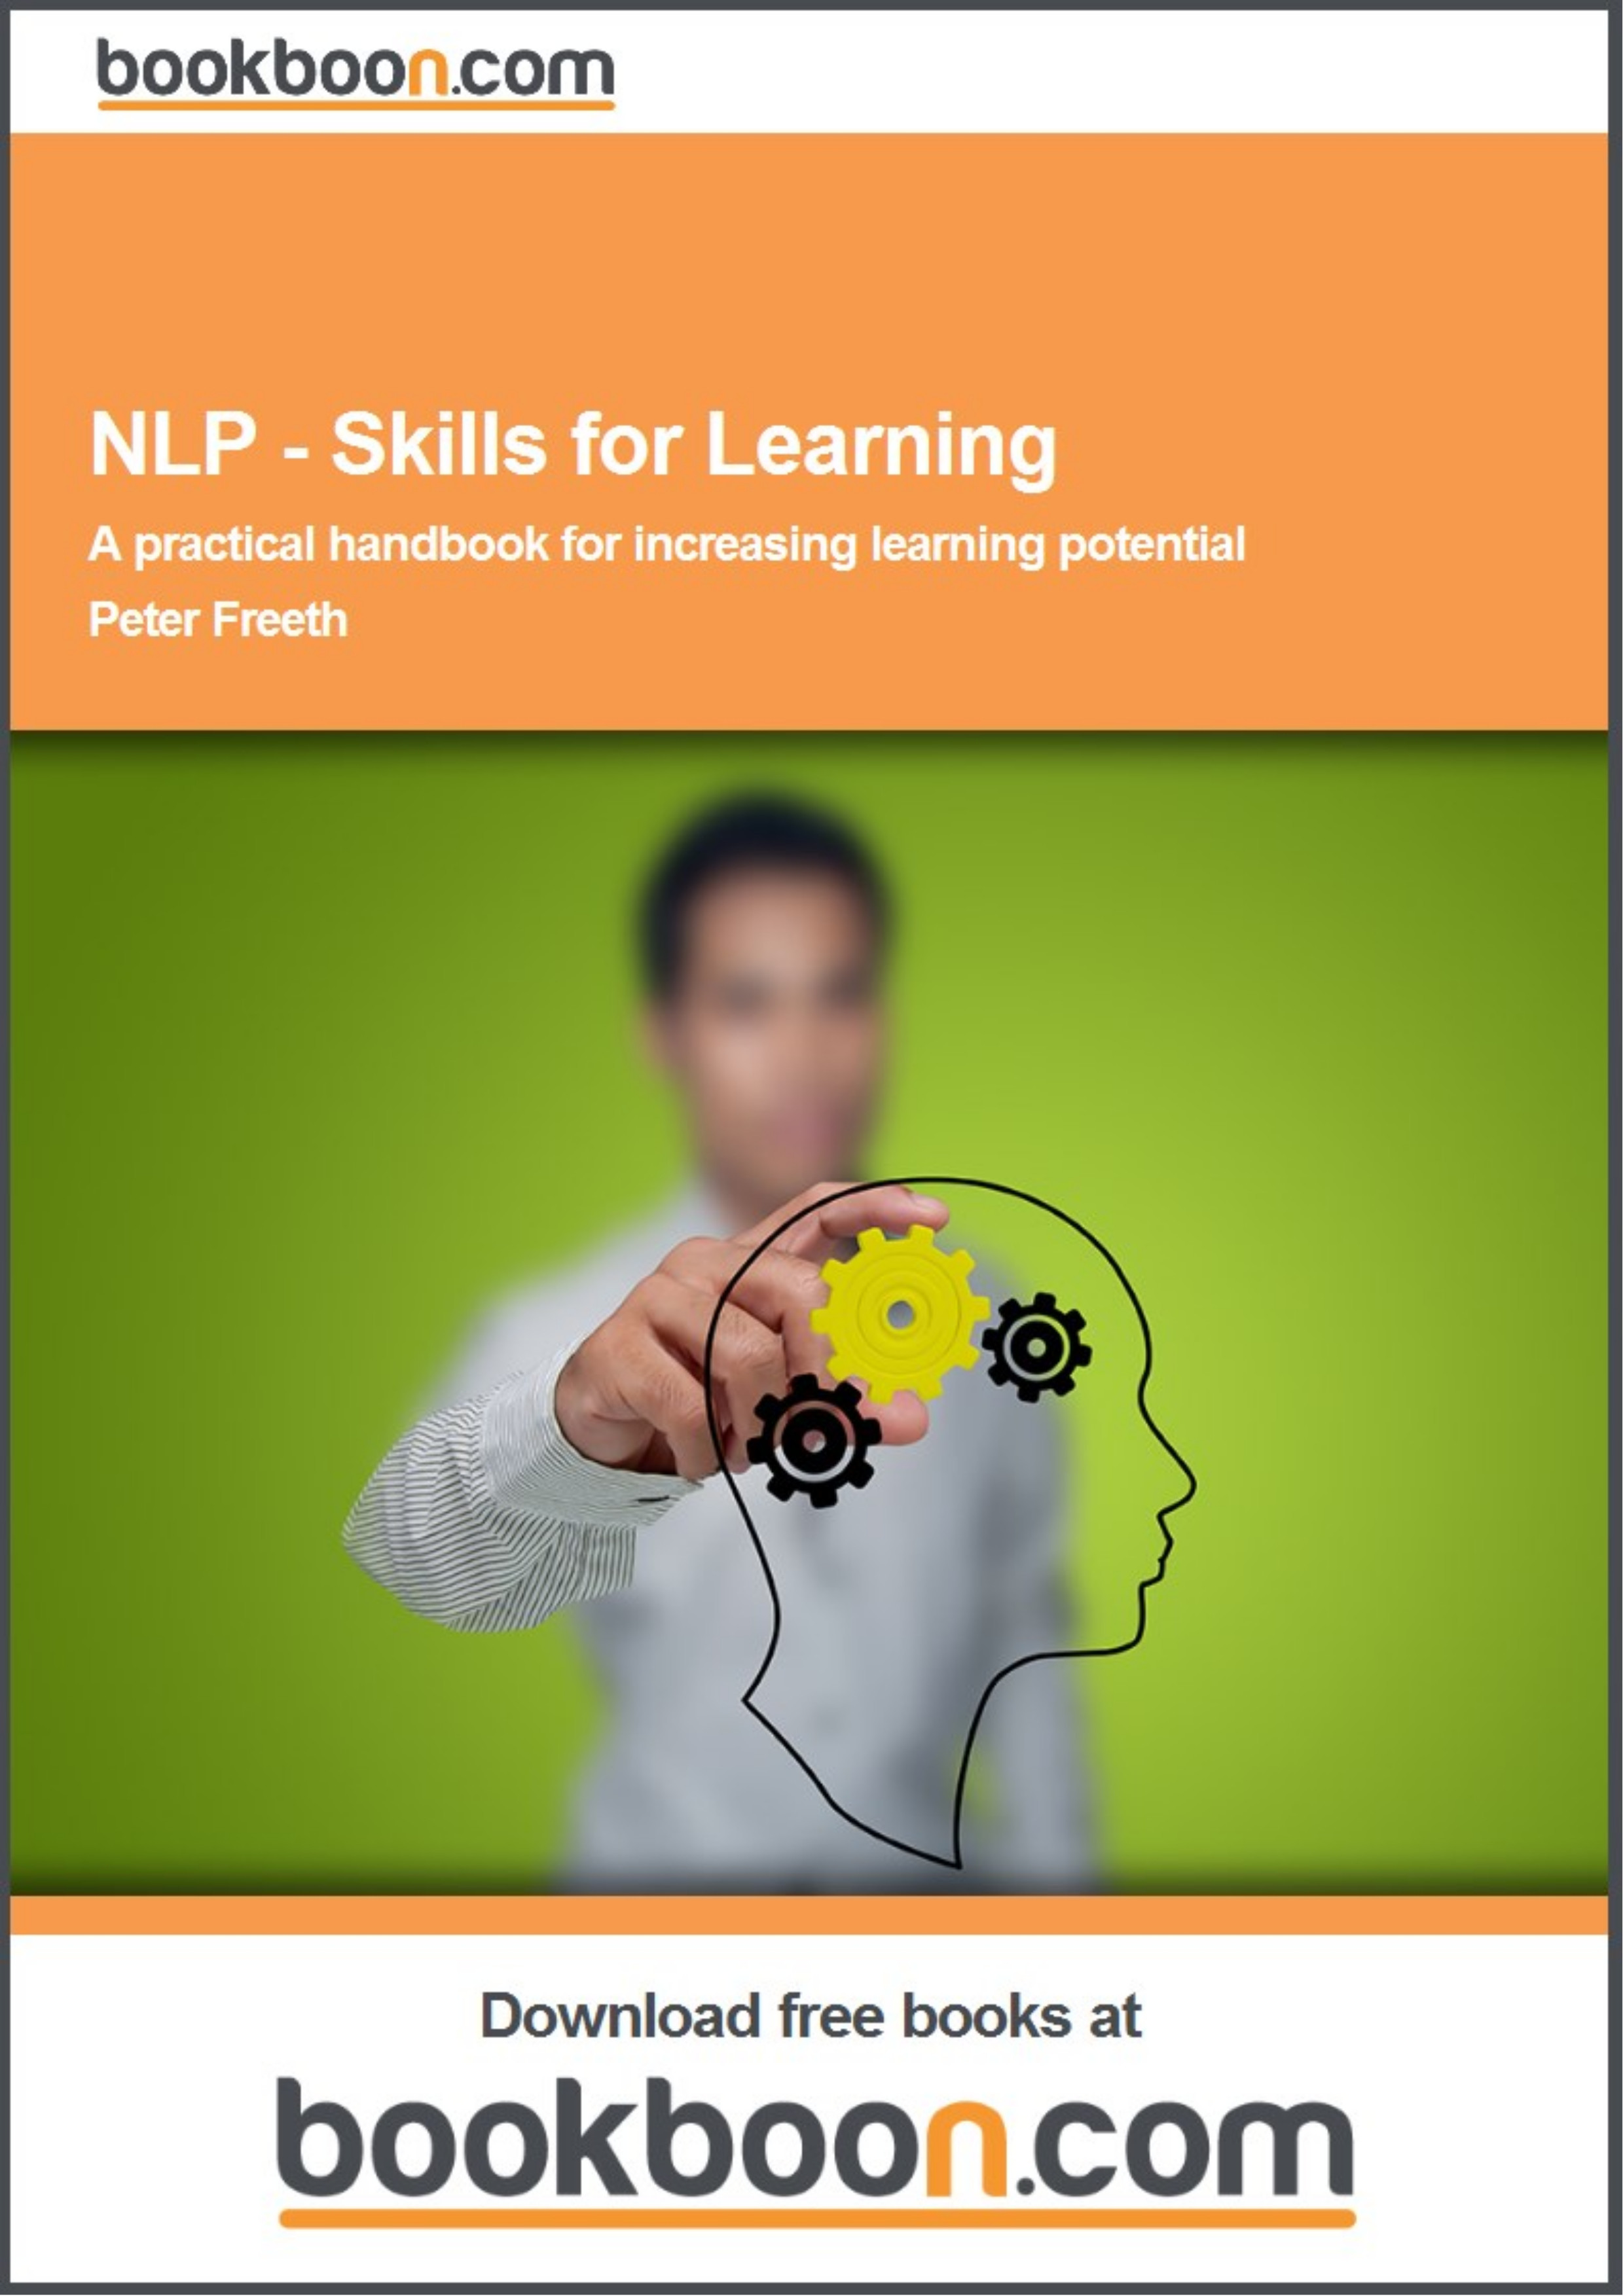 NLP - Skills for Learning by Peter Freeth. A practical handbook for increasing learning potential. This book is written to both teach and demonstrate the application of NLP as a learning tool, with ready made exercises and applications to use right away.